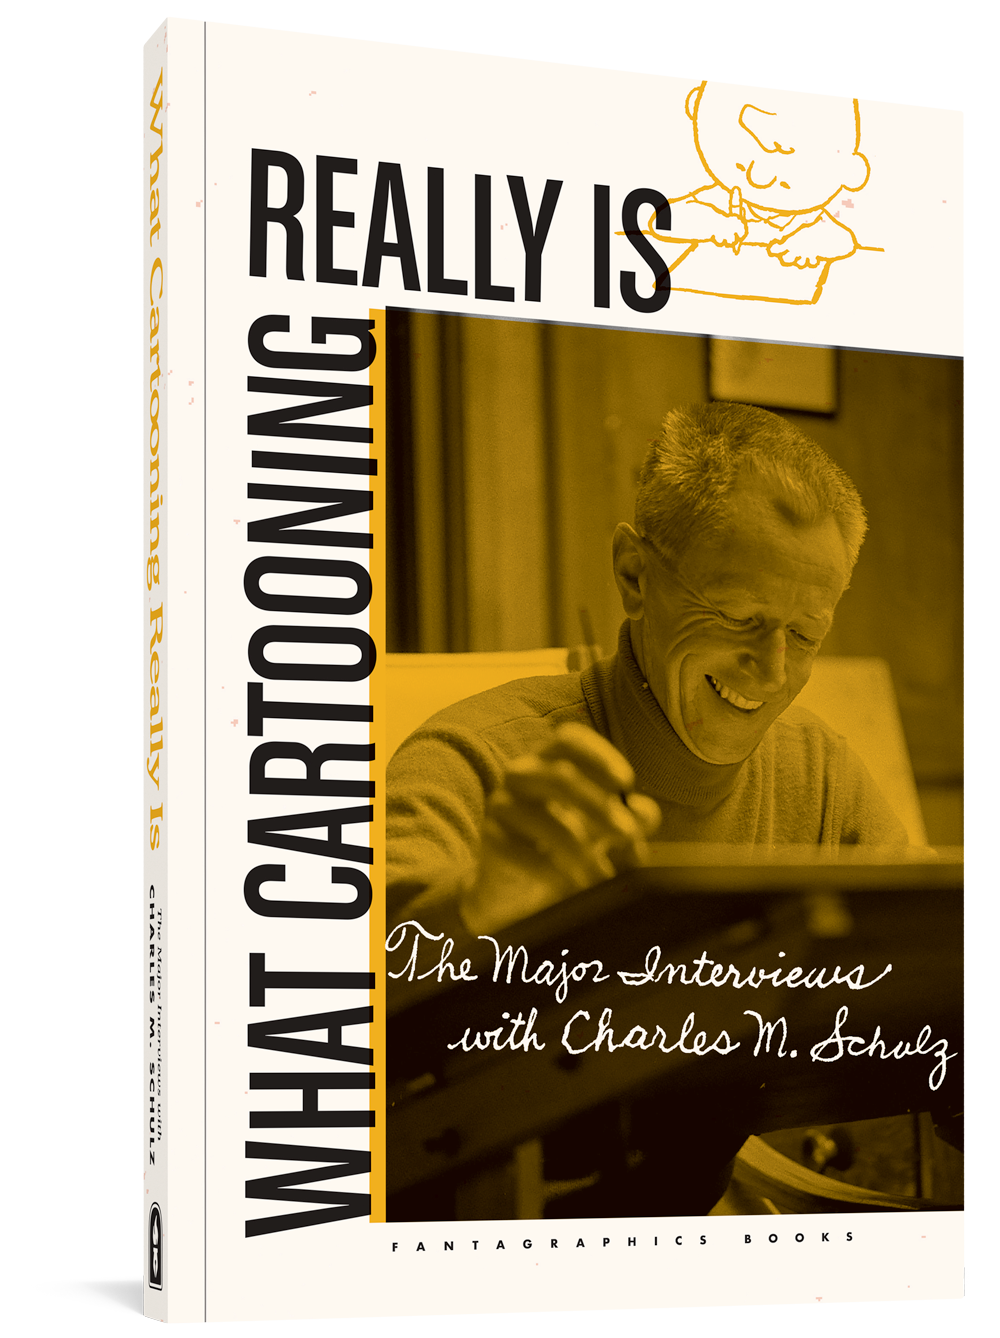 What Cartooning Really Is: The Major Interviews with Charles M. Schulz